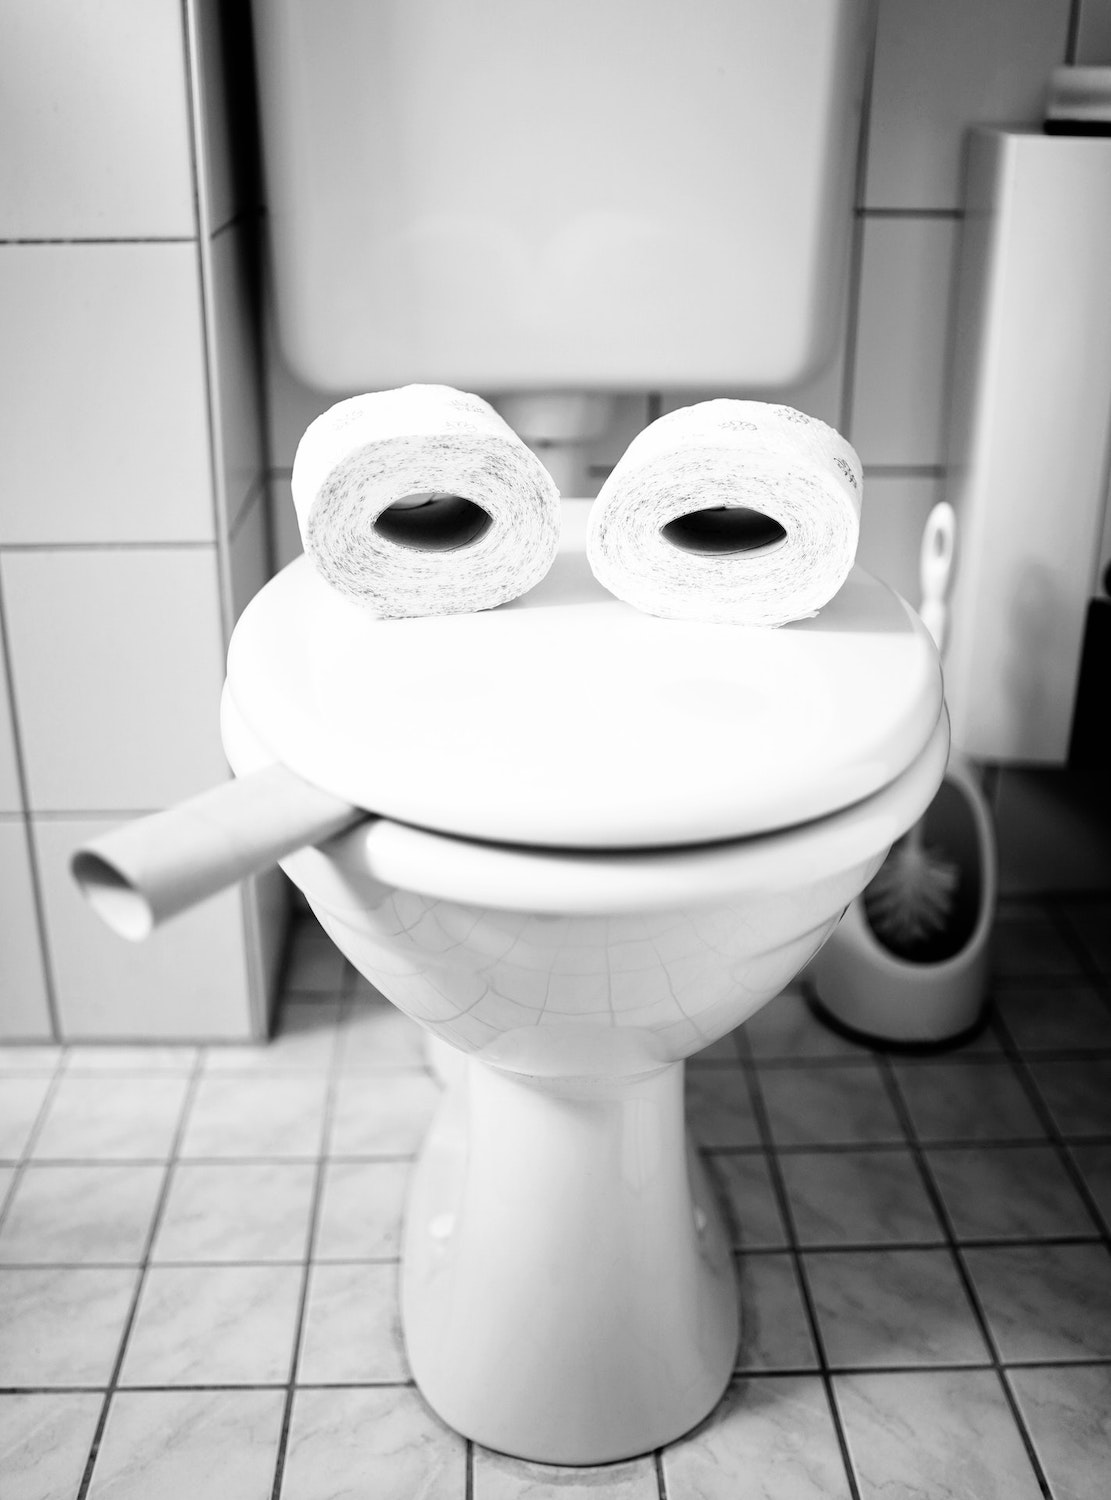 frequently asked questions faq about corner toilet